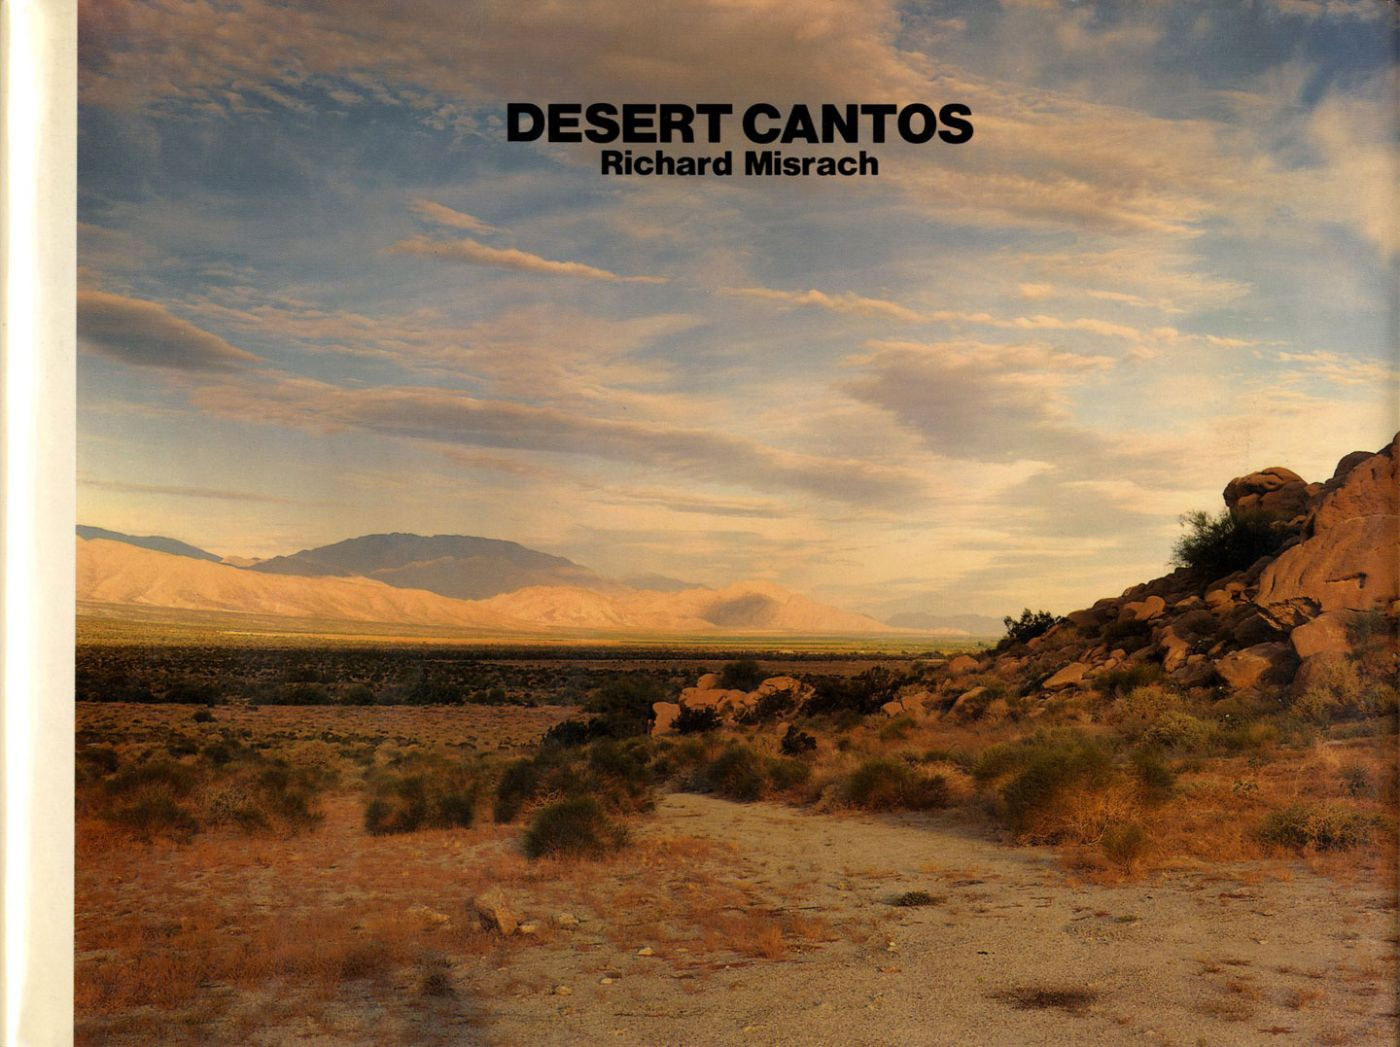 Richard Misrach: Desert Cantos (Japanese Edition) [SIGNED]